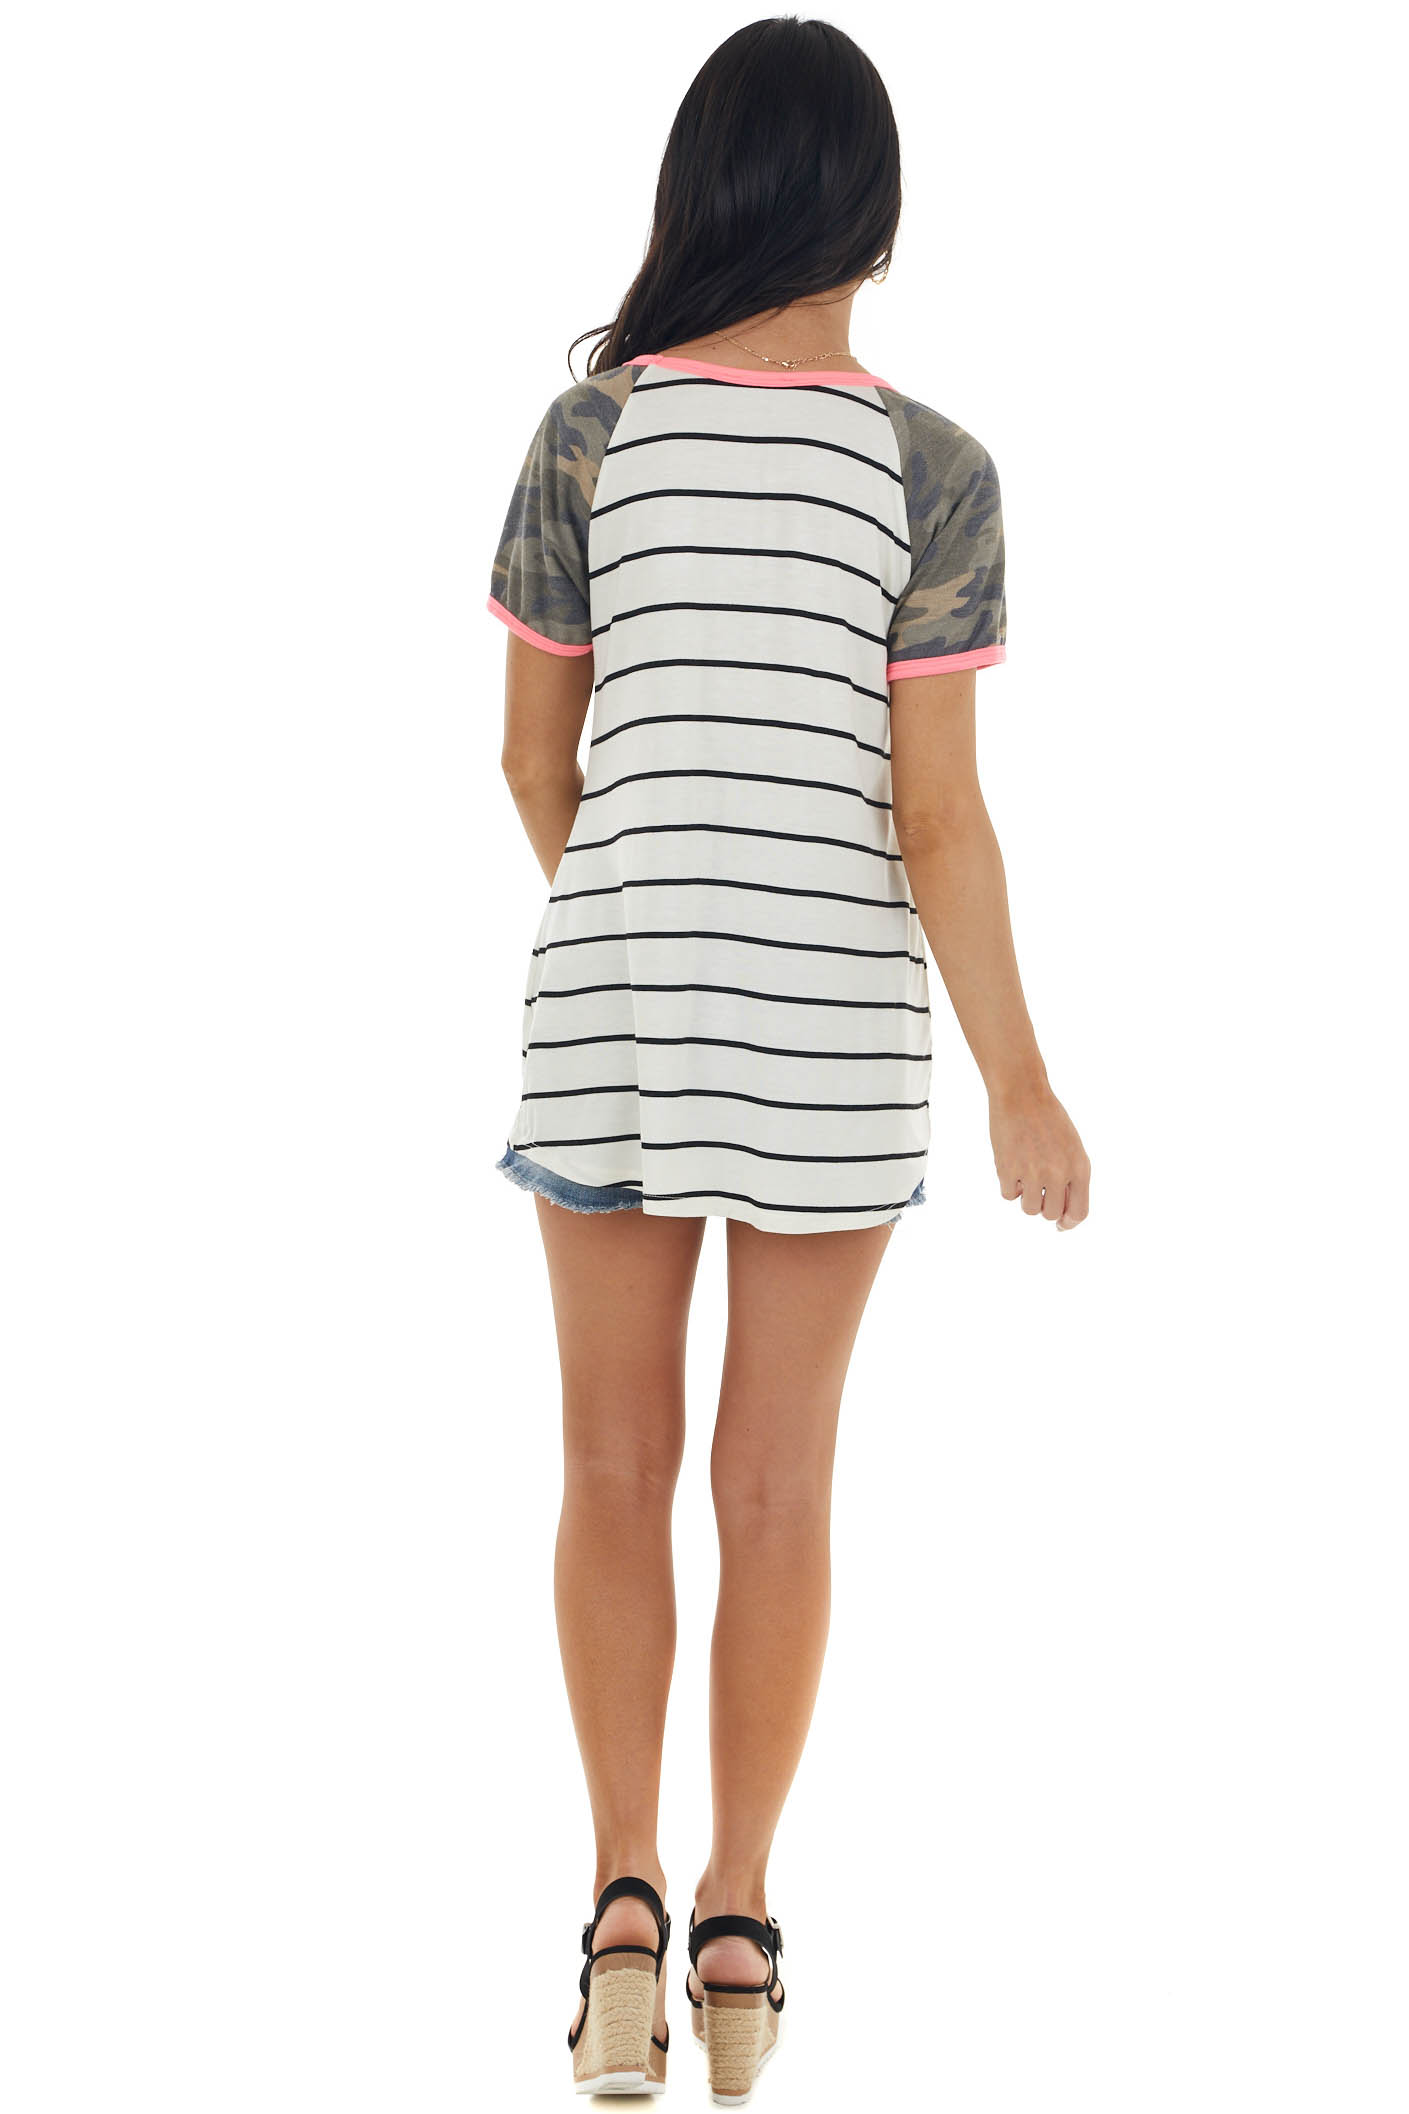 Ivory and Black Striped Knit Top with Camo and Neon Detail